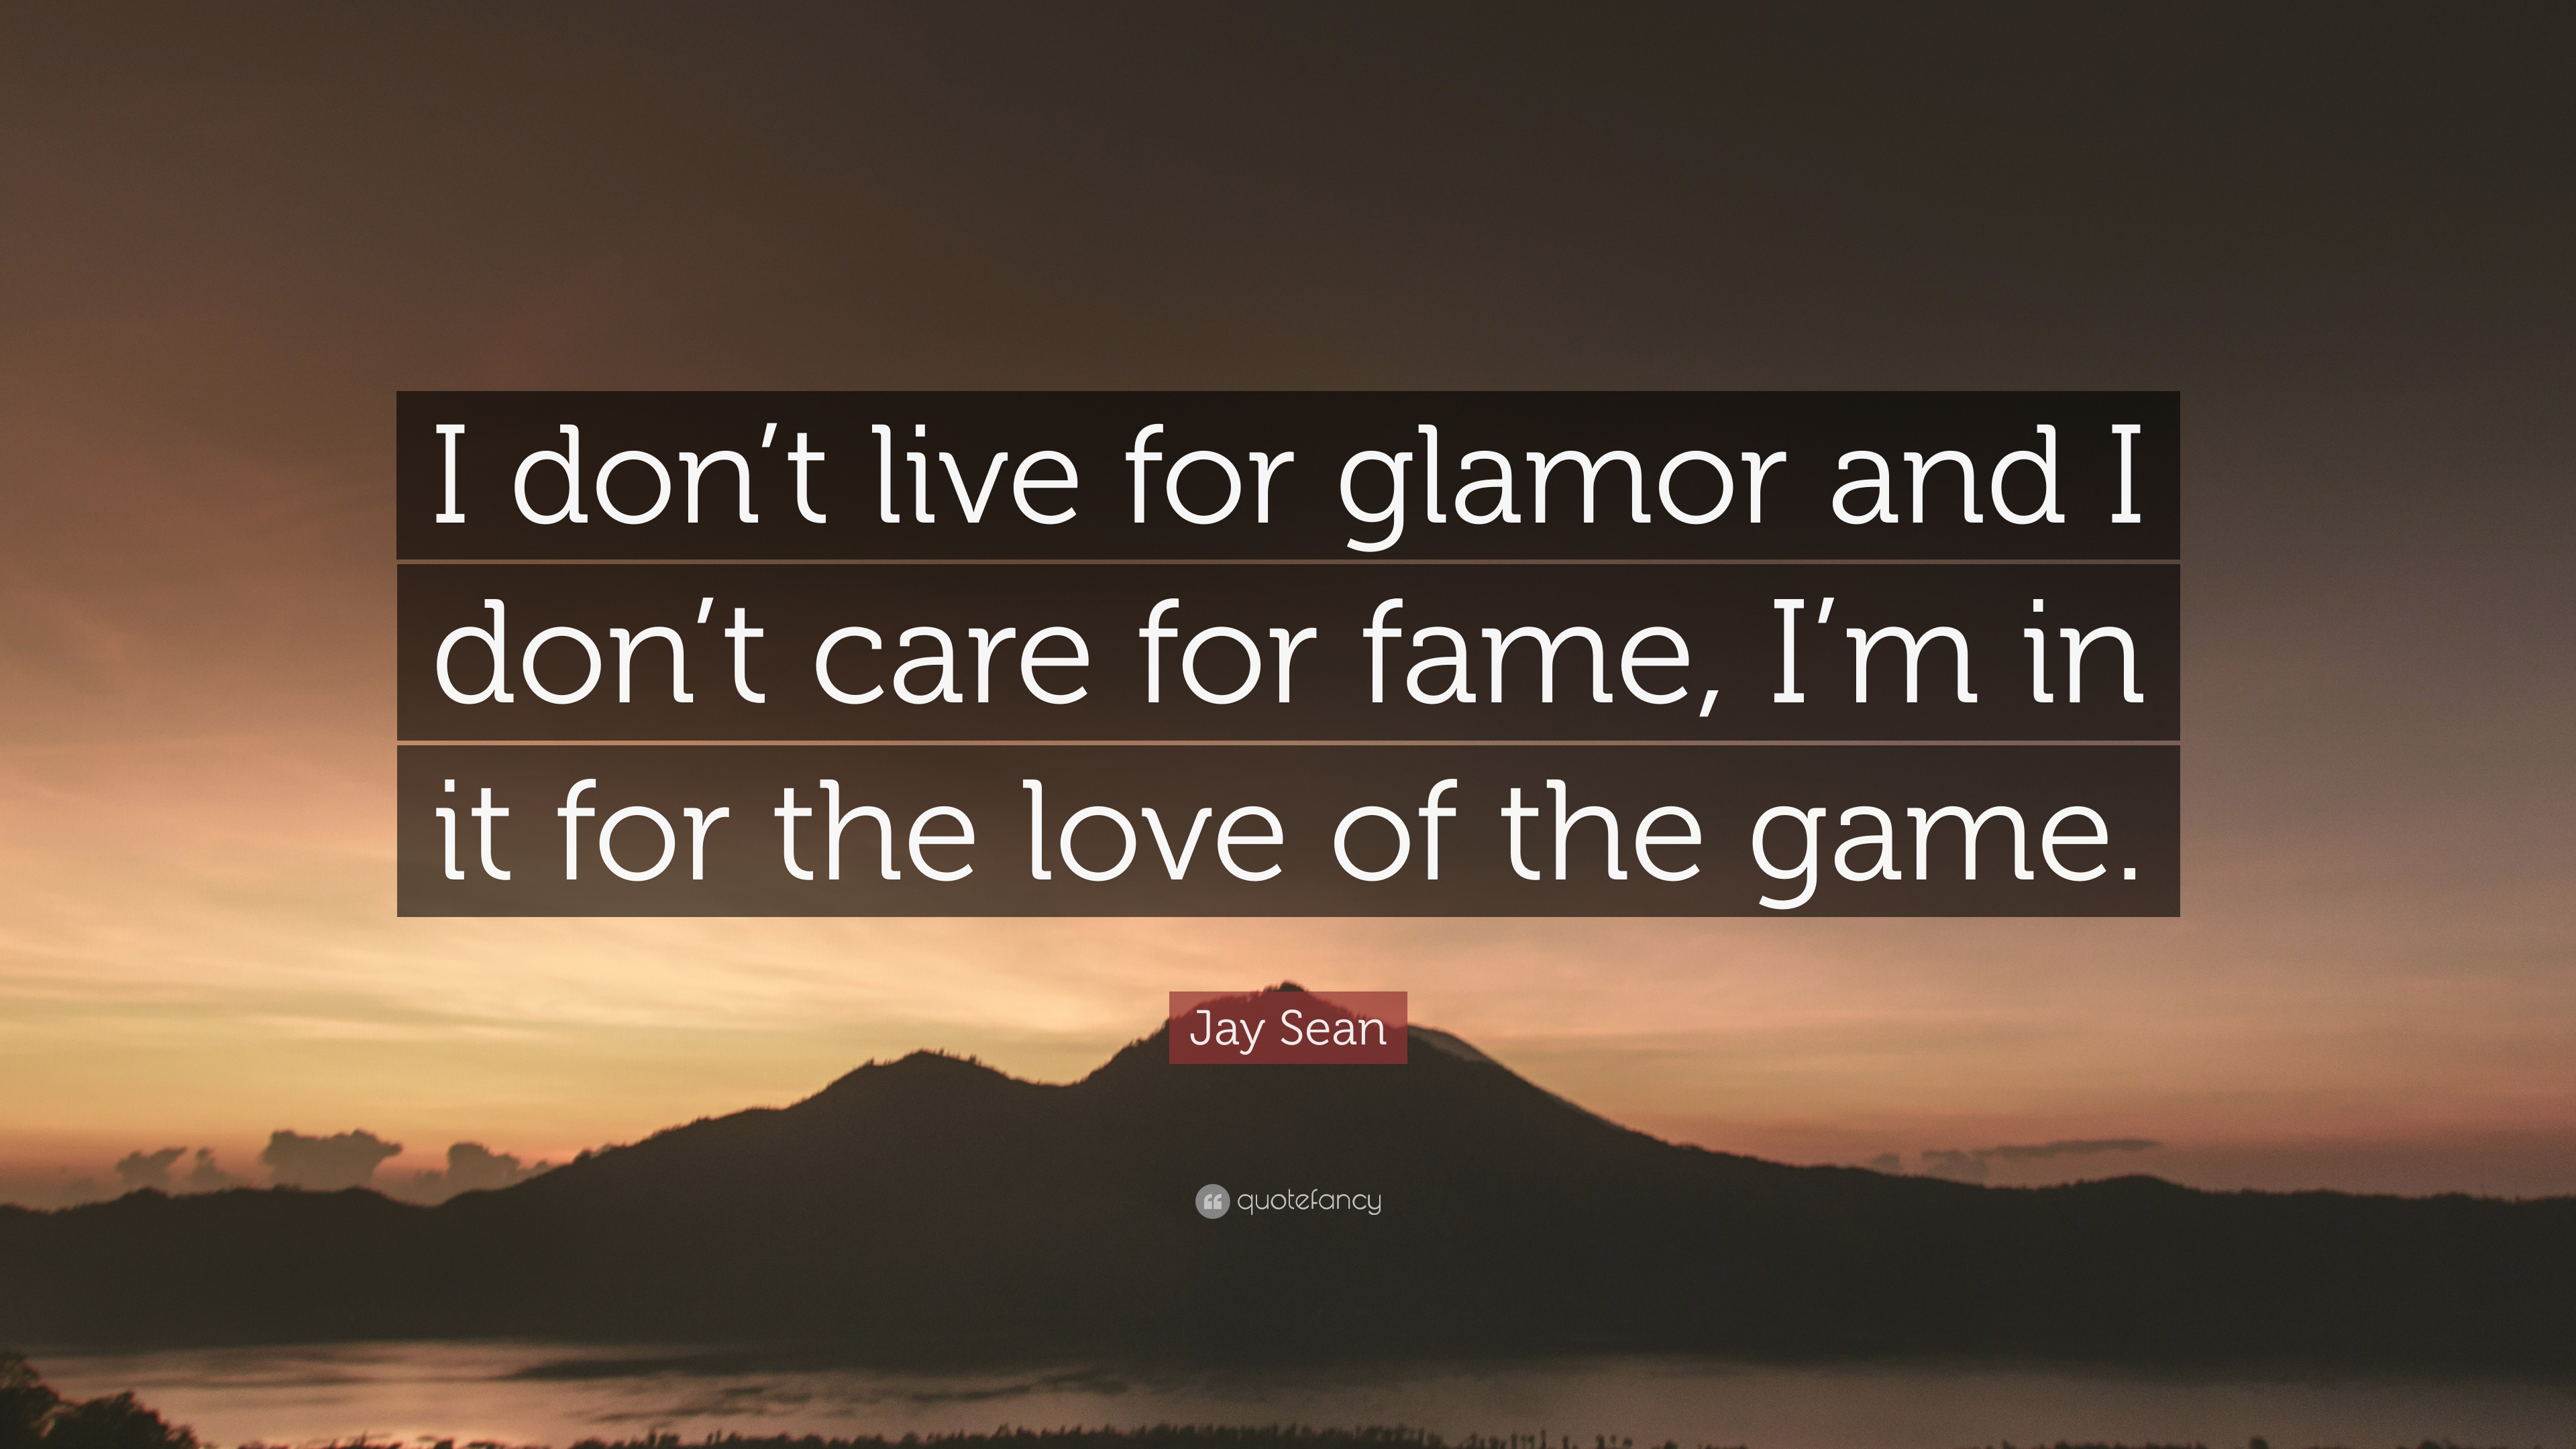 Jay Sean Quote I Dont Live For Glamor And I Dont Care For Fame